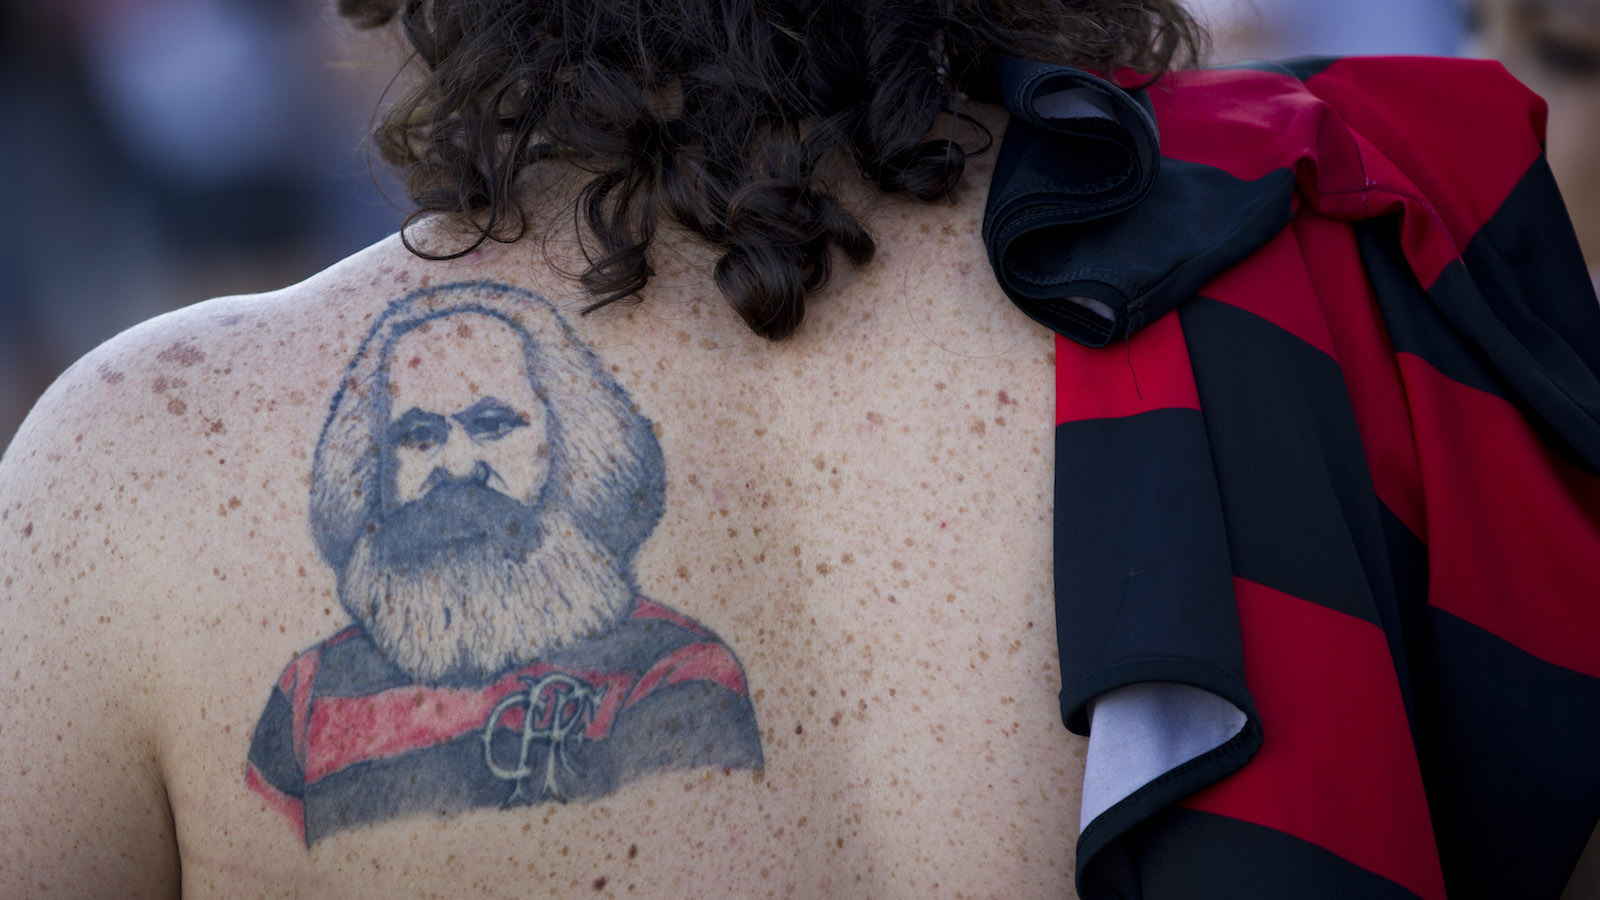 A protestor wearing a tattoo of Socialist philosopher Karl Marx with a jersey of the Flamengo soccer team marches during a demonstration against the privatization of the Maracana soccer stadium in Rio de Janeiro, Brazil, Sunday, June 3, 2012. The Maracana stadium will host the finals of both the 2013 Confederations Cup and the 2014 World Cup. (AP Photo/Victor R. Caivano)